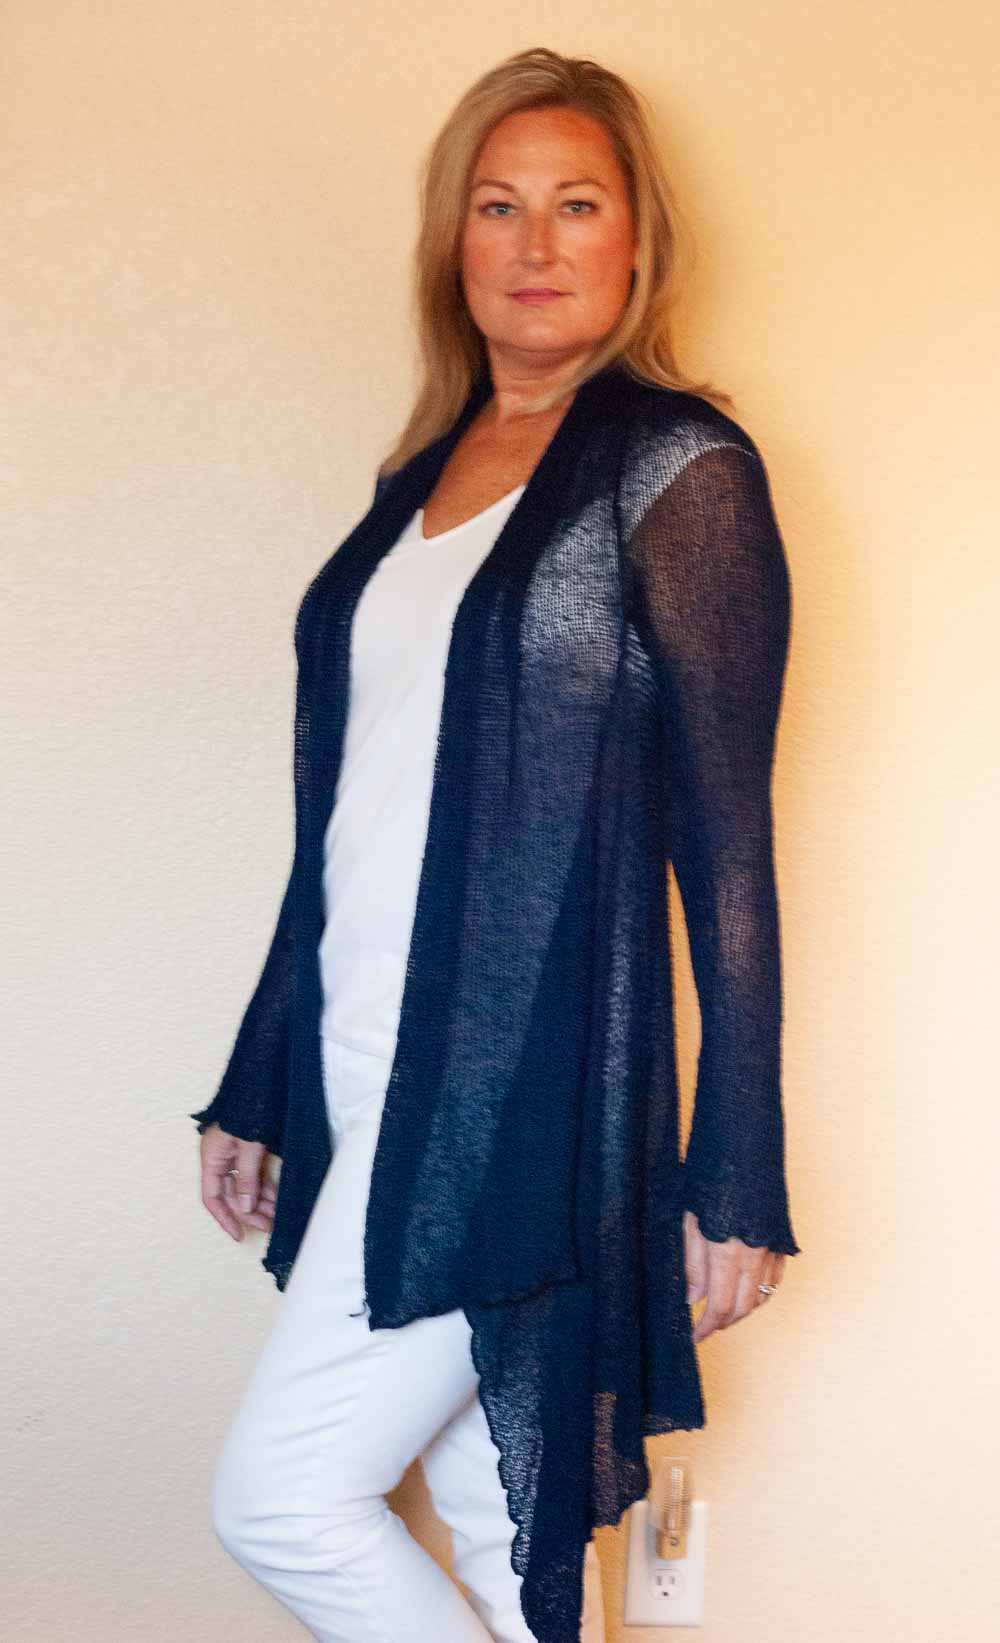 Assymetrical Knit Cardigan is One Size, wrinke free, and perfect for travel and daily Yoga classes.